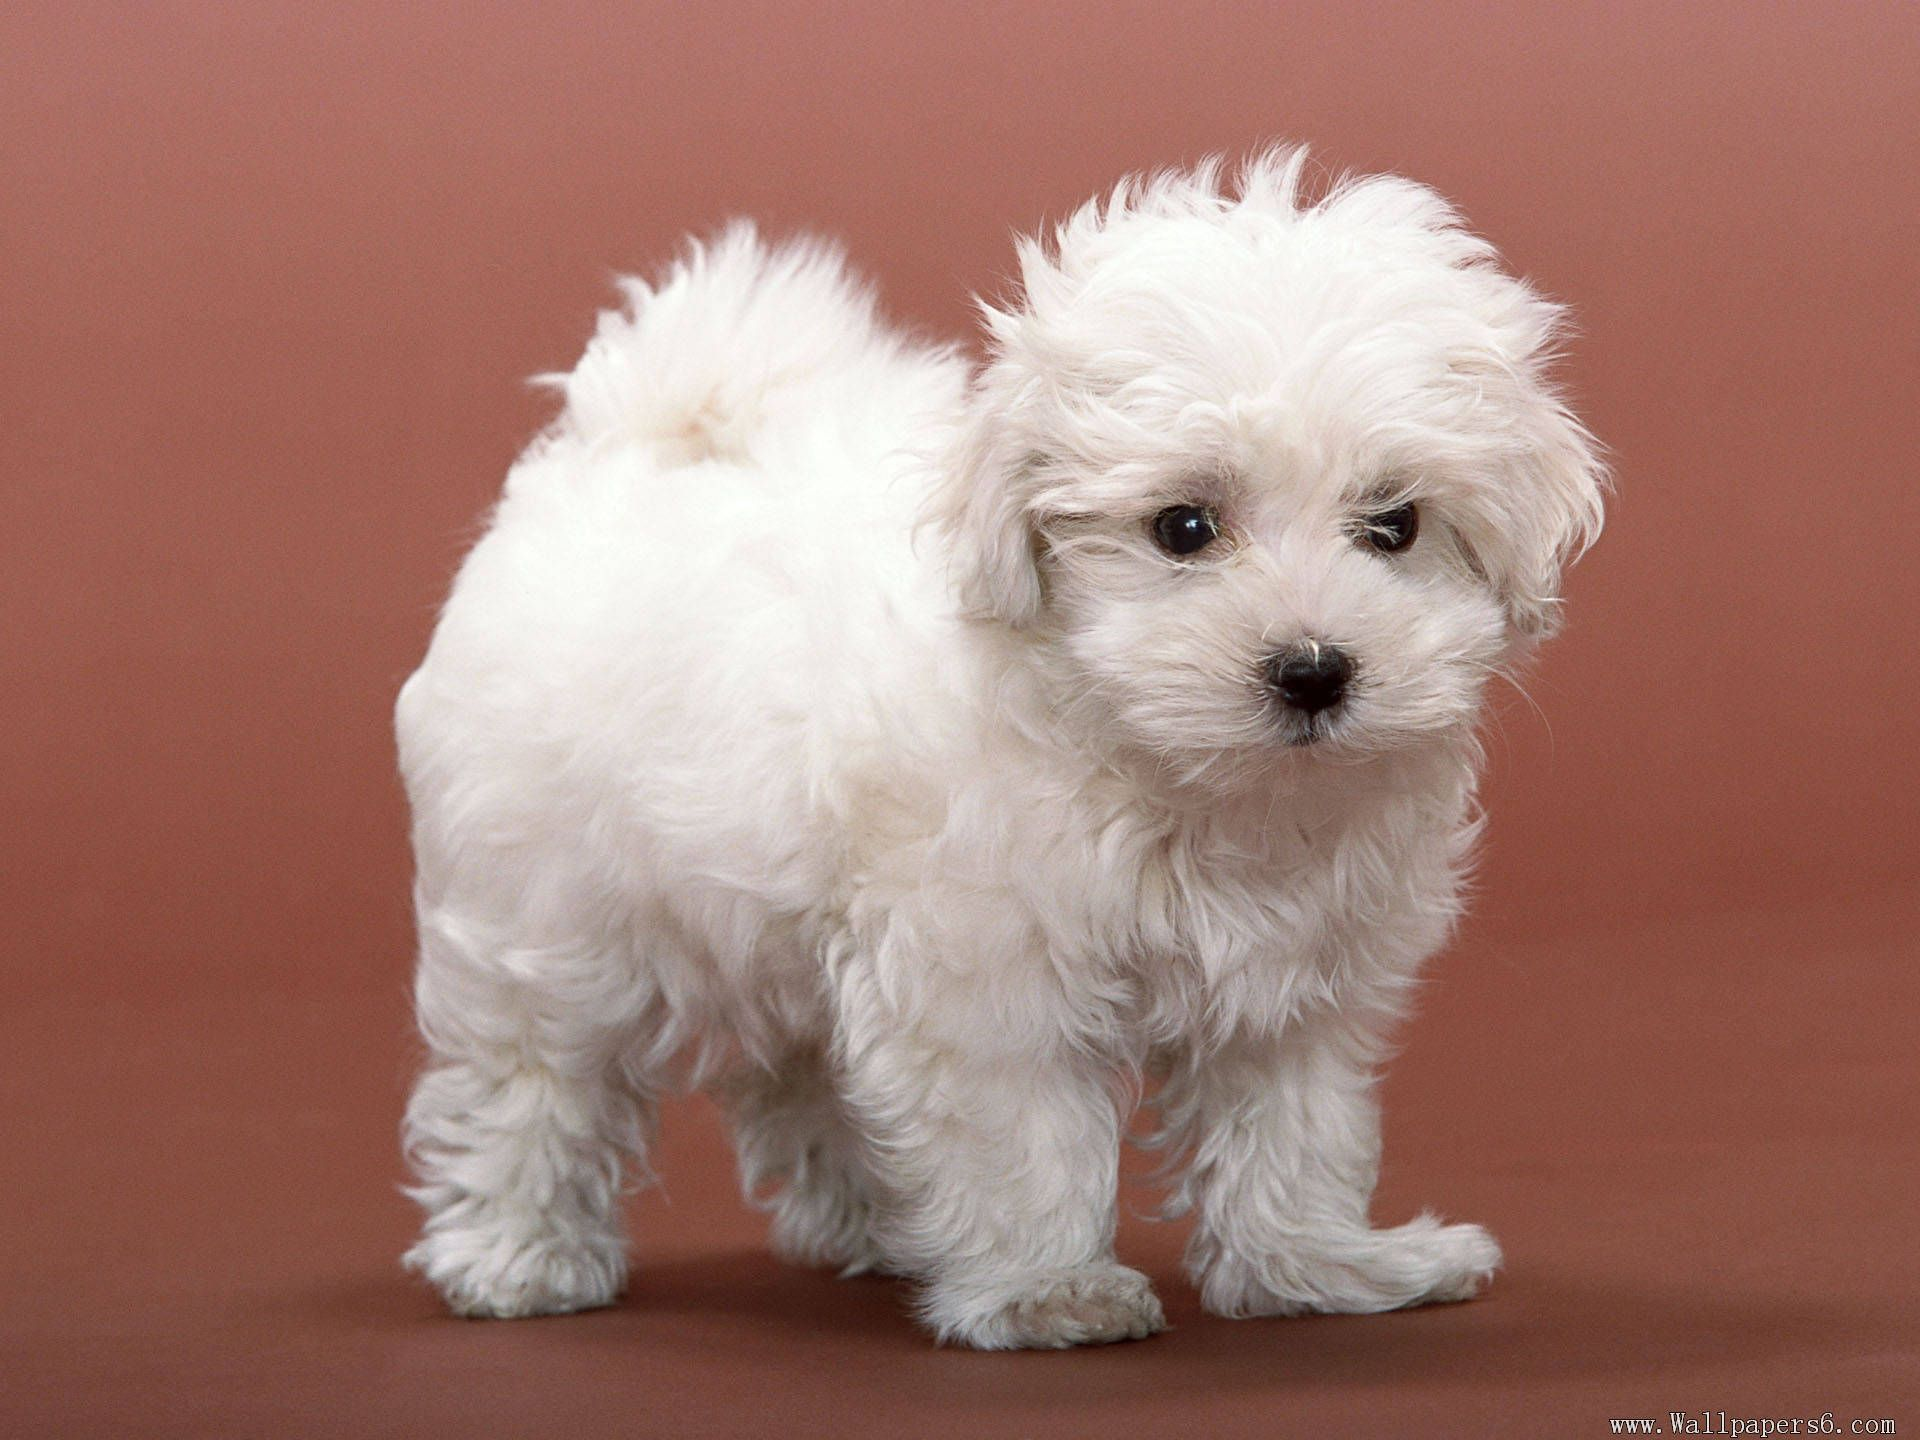 white puppy pictures - Google Search   Red, White and Blue   Pinterest